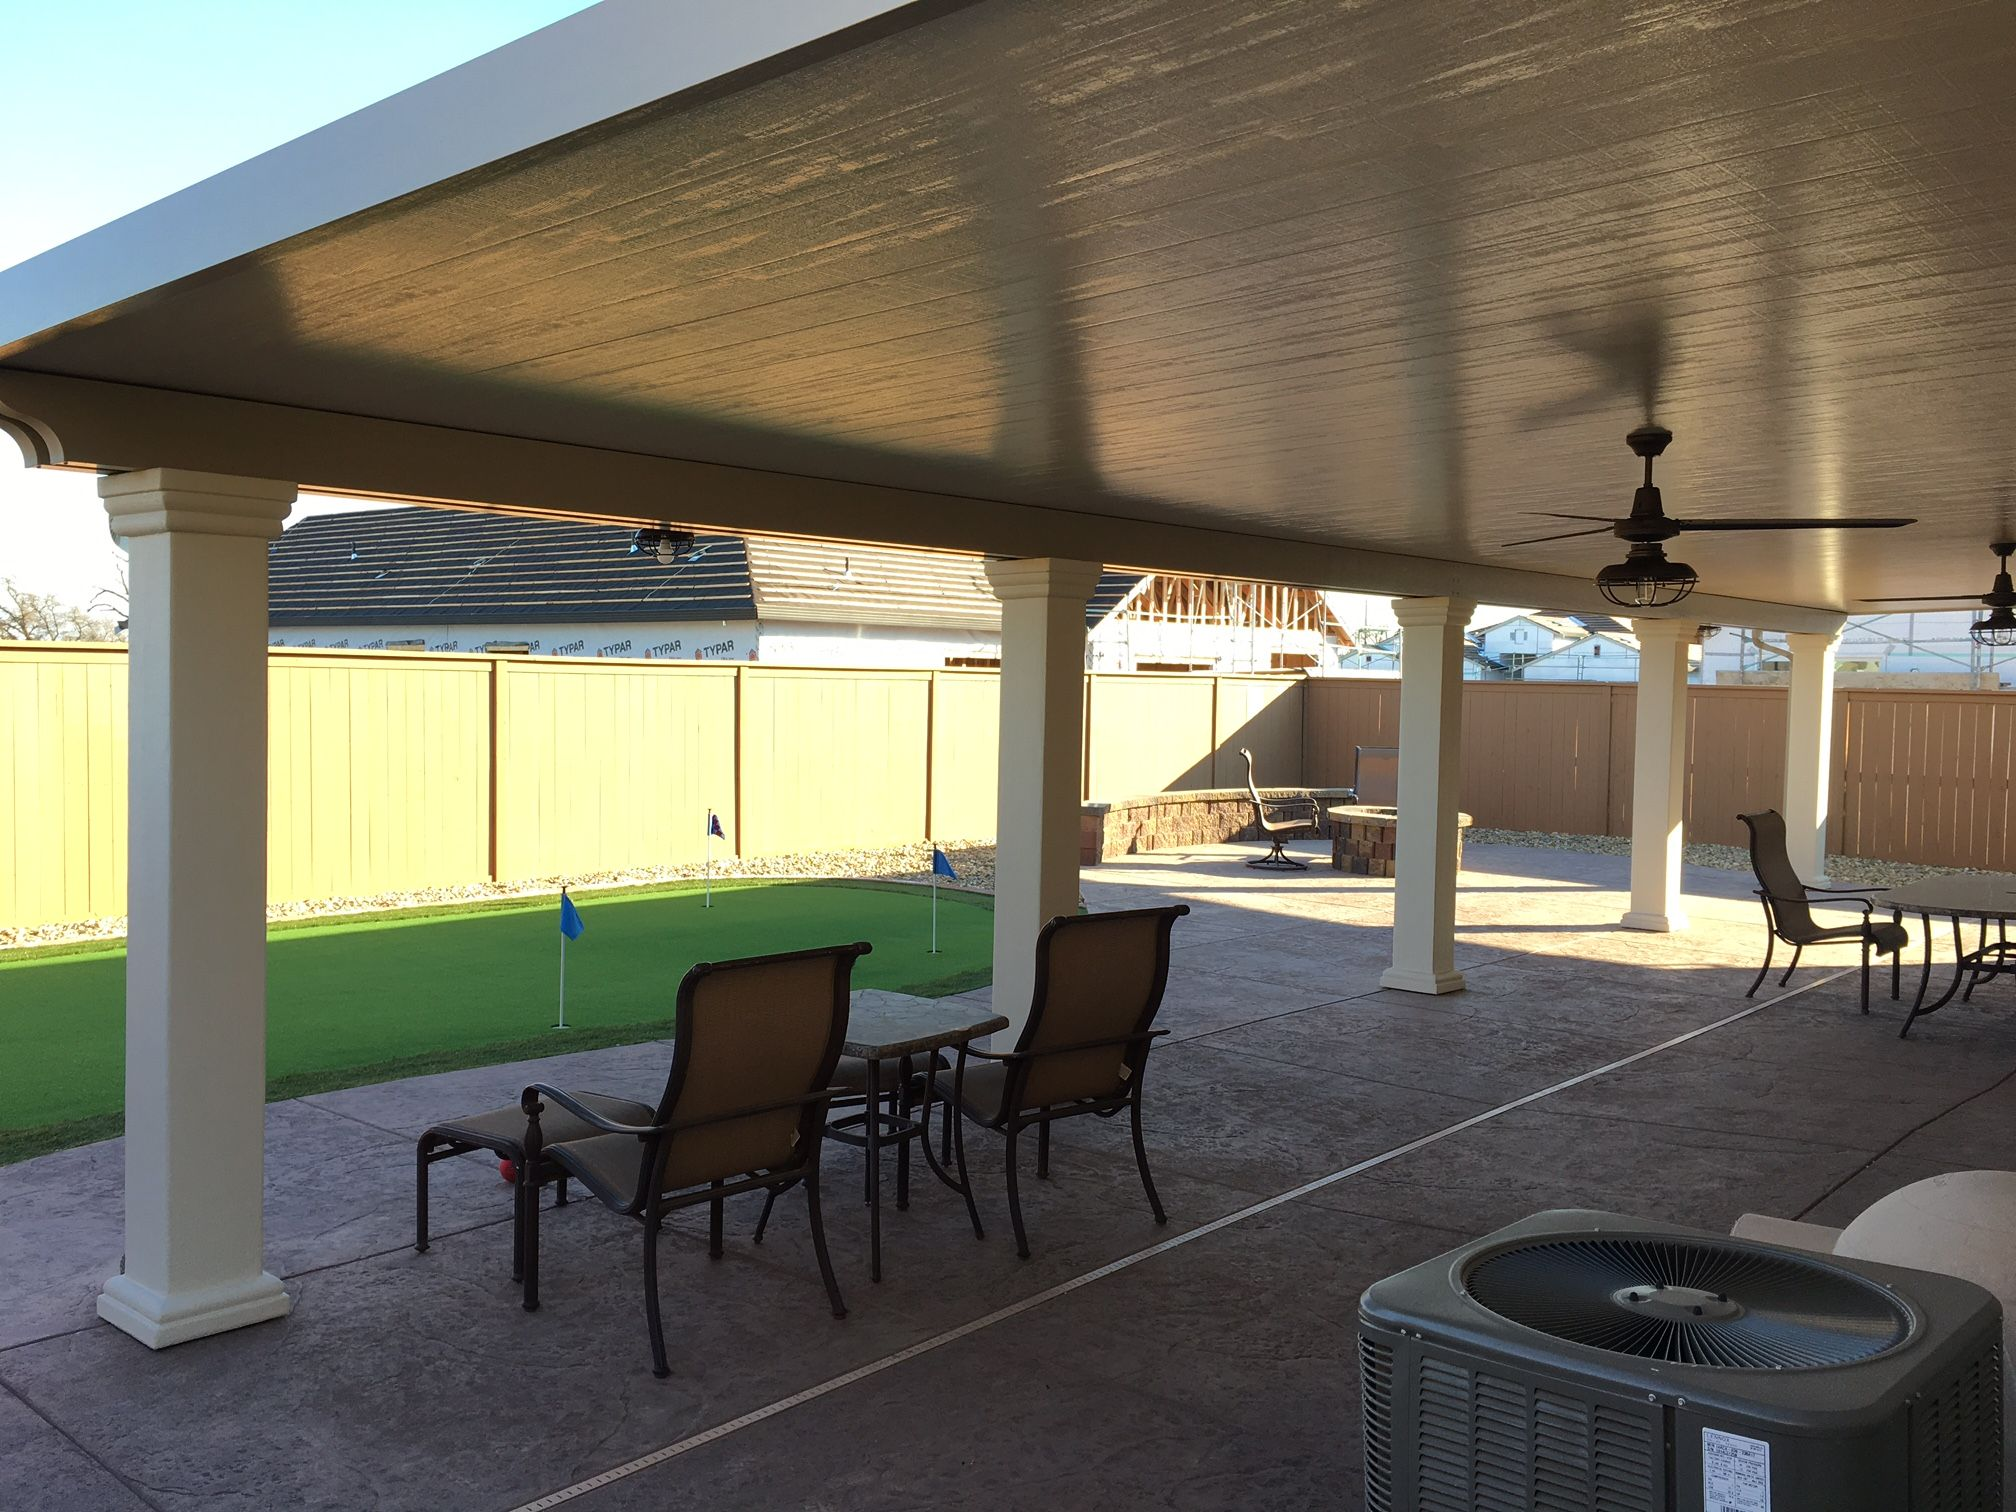 Solid Patio Covers With Images Patio Aluminum Patio Covers Backyard Patio Designs